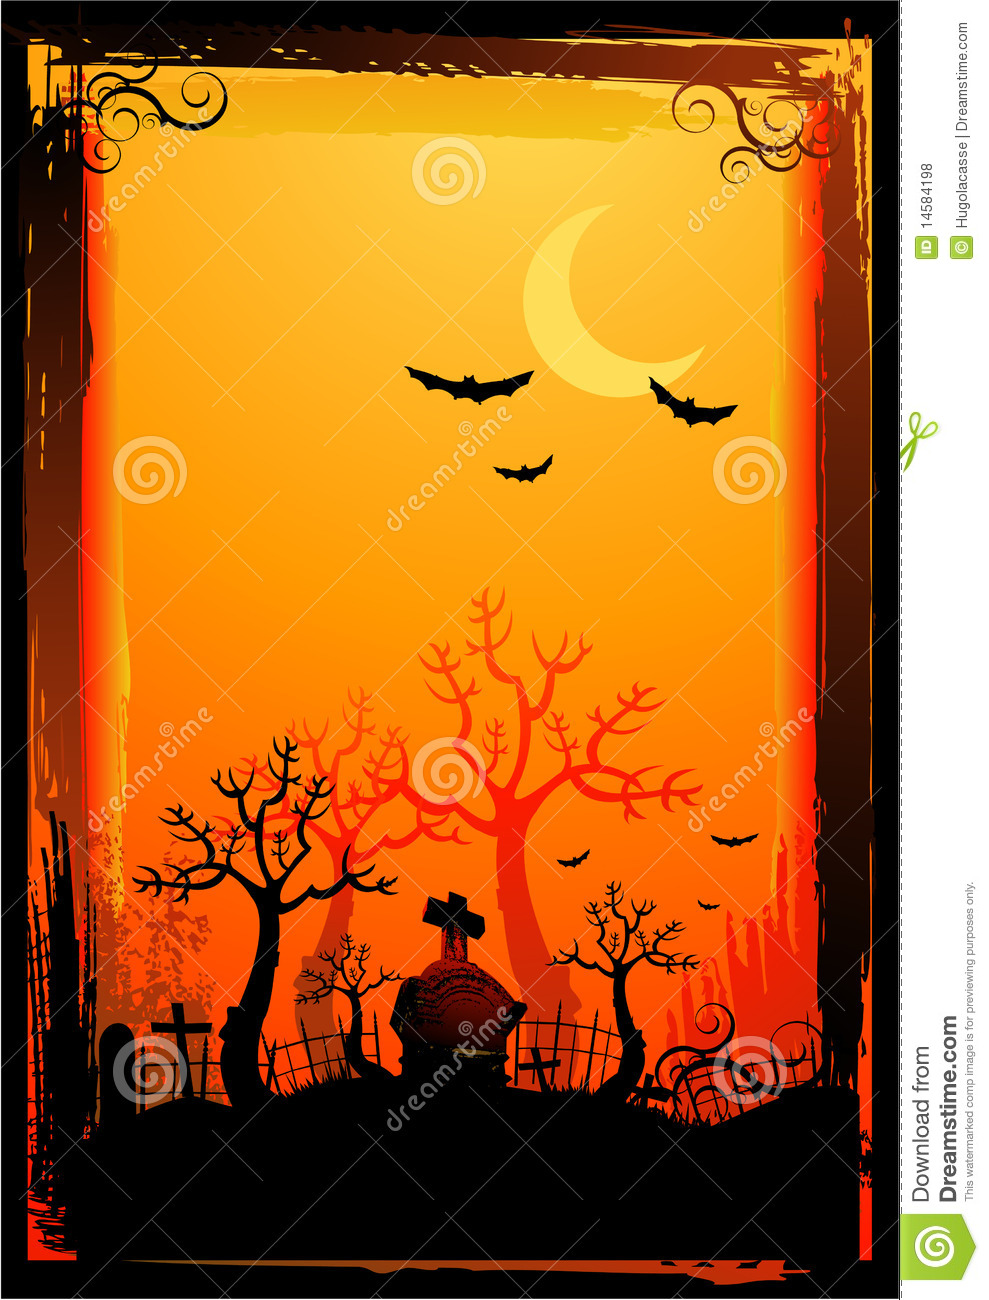 Halloween Poster Background Free.Halloween Poster Background Stock Vector Illustration Of